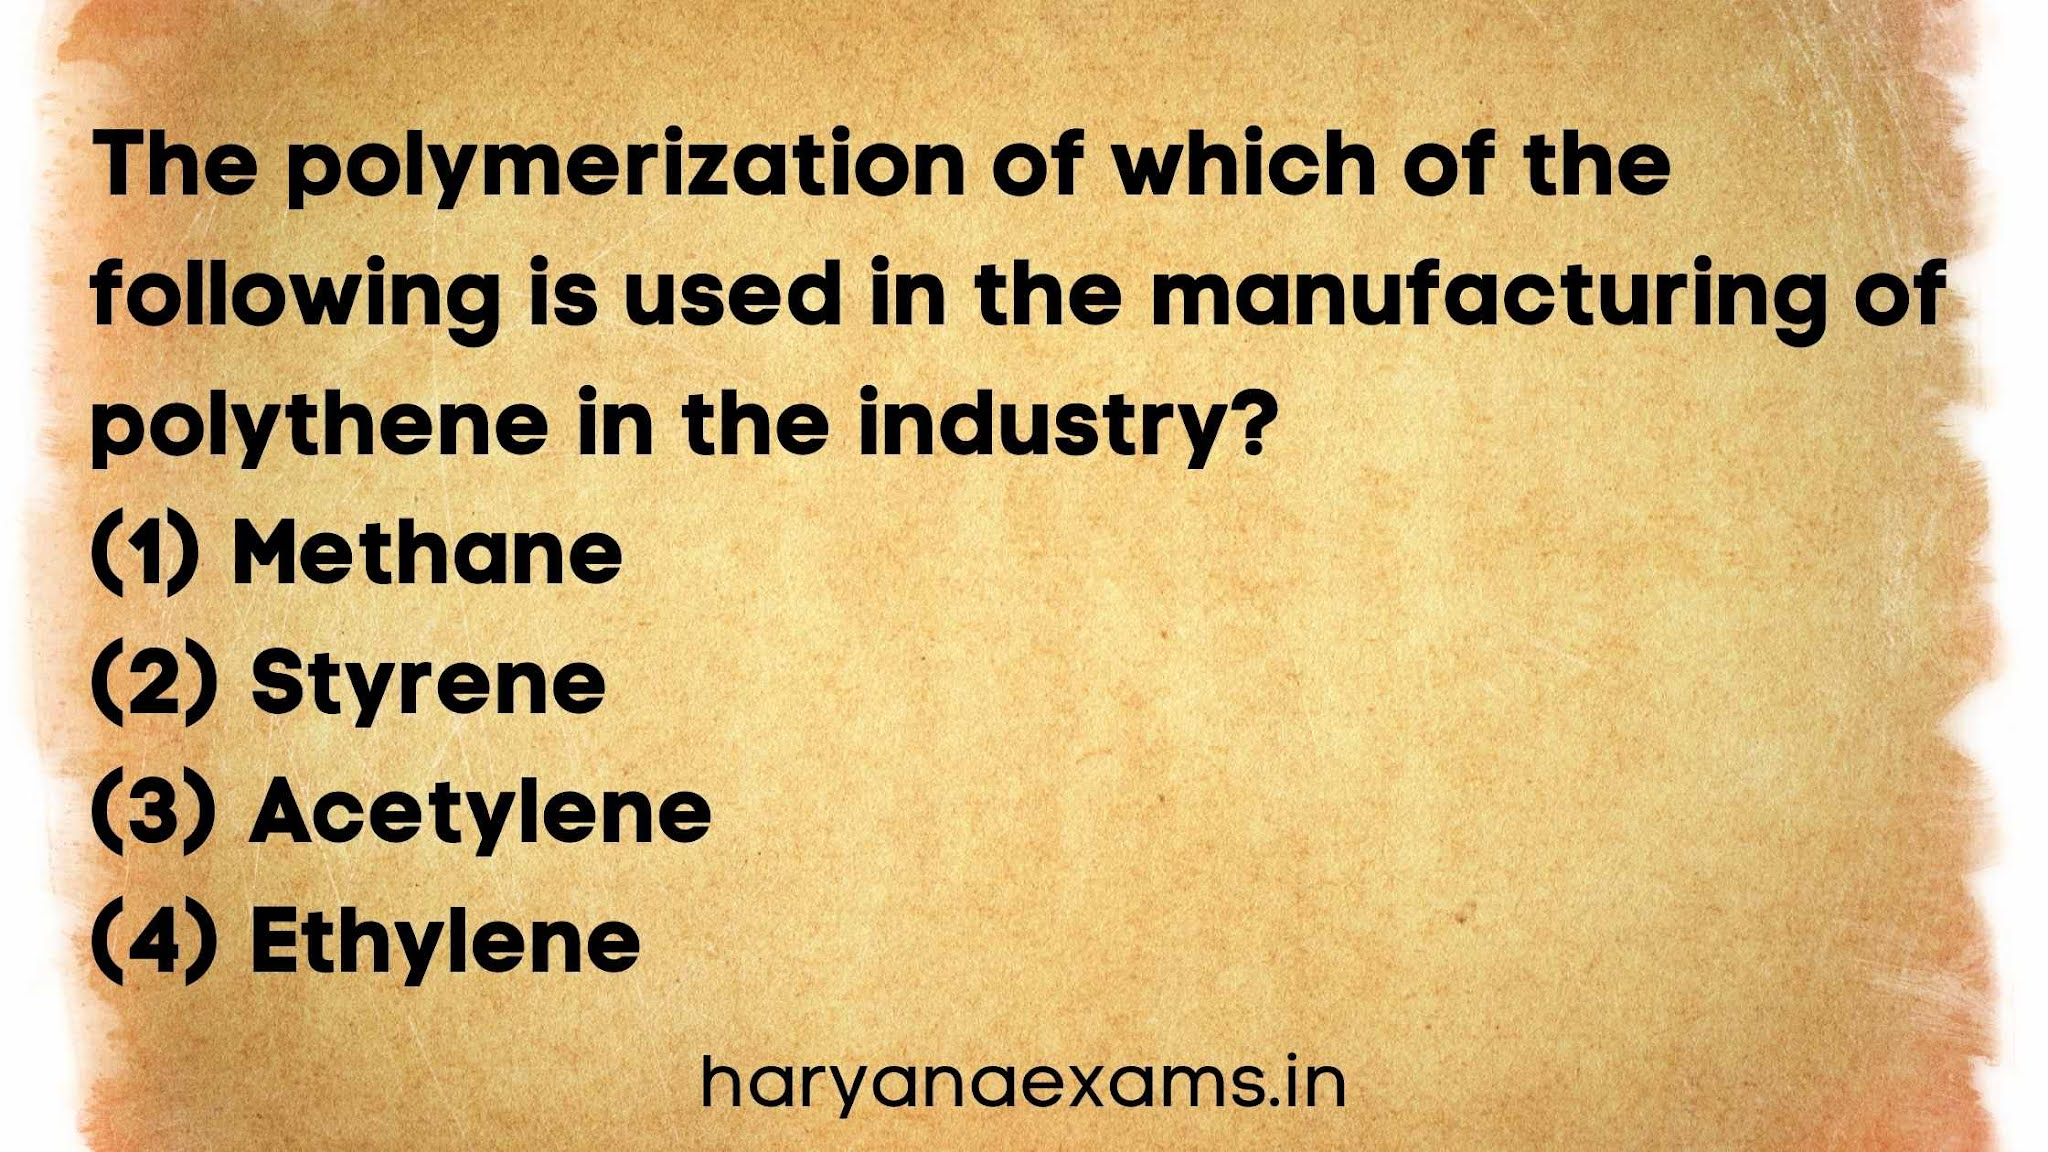 The polymerization of which of the following is used in the manufacturing of polythene in the industry?   (1) Methane   (2) Styrene   (3) Acetylene   (4) Ethylene